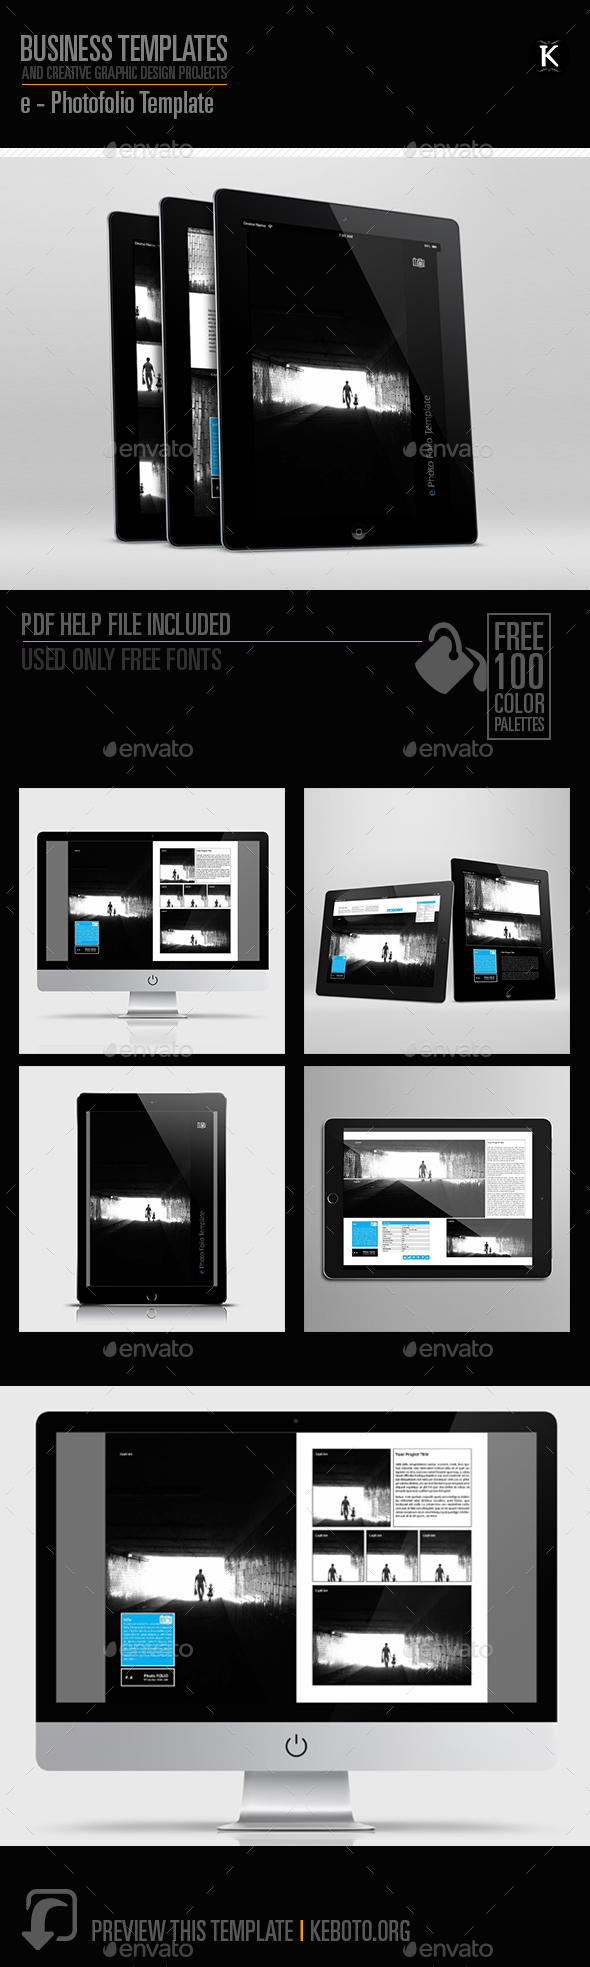 e - Photofolio Template - ePublishing